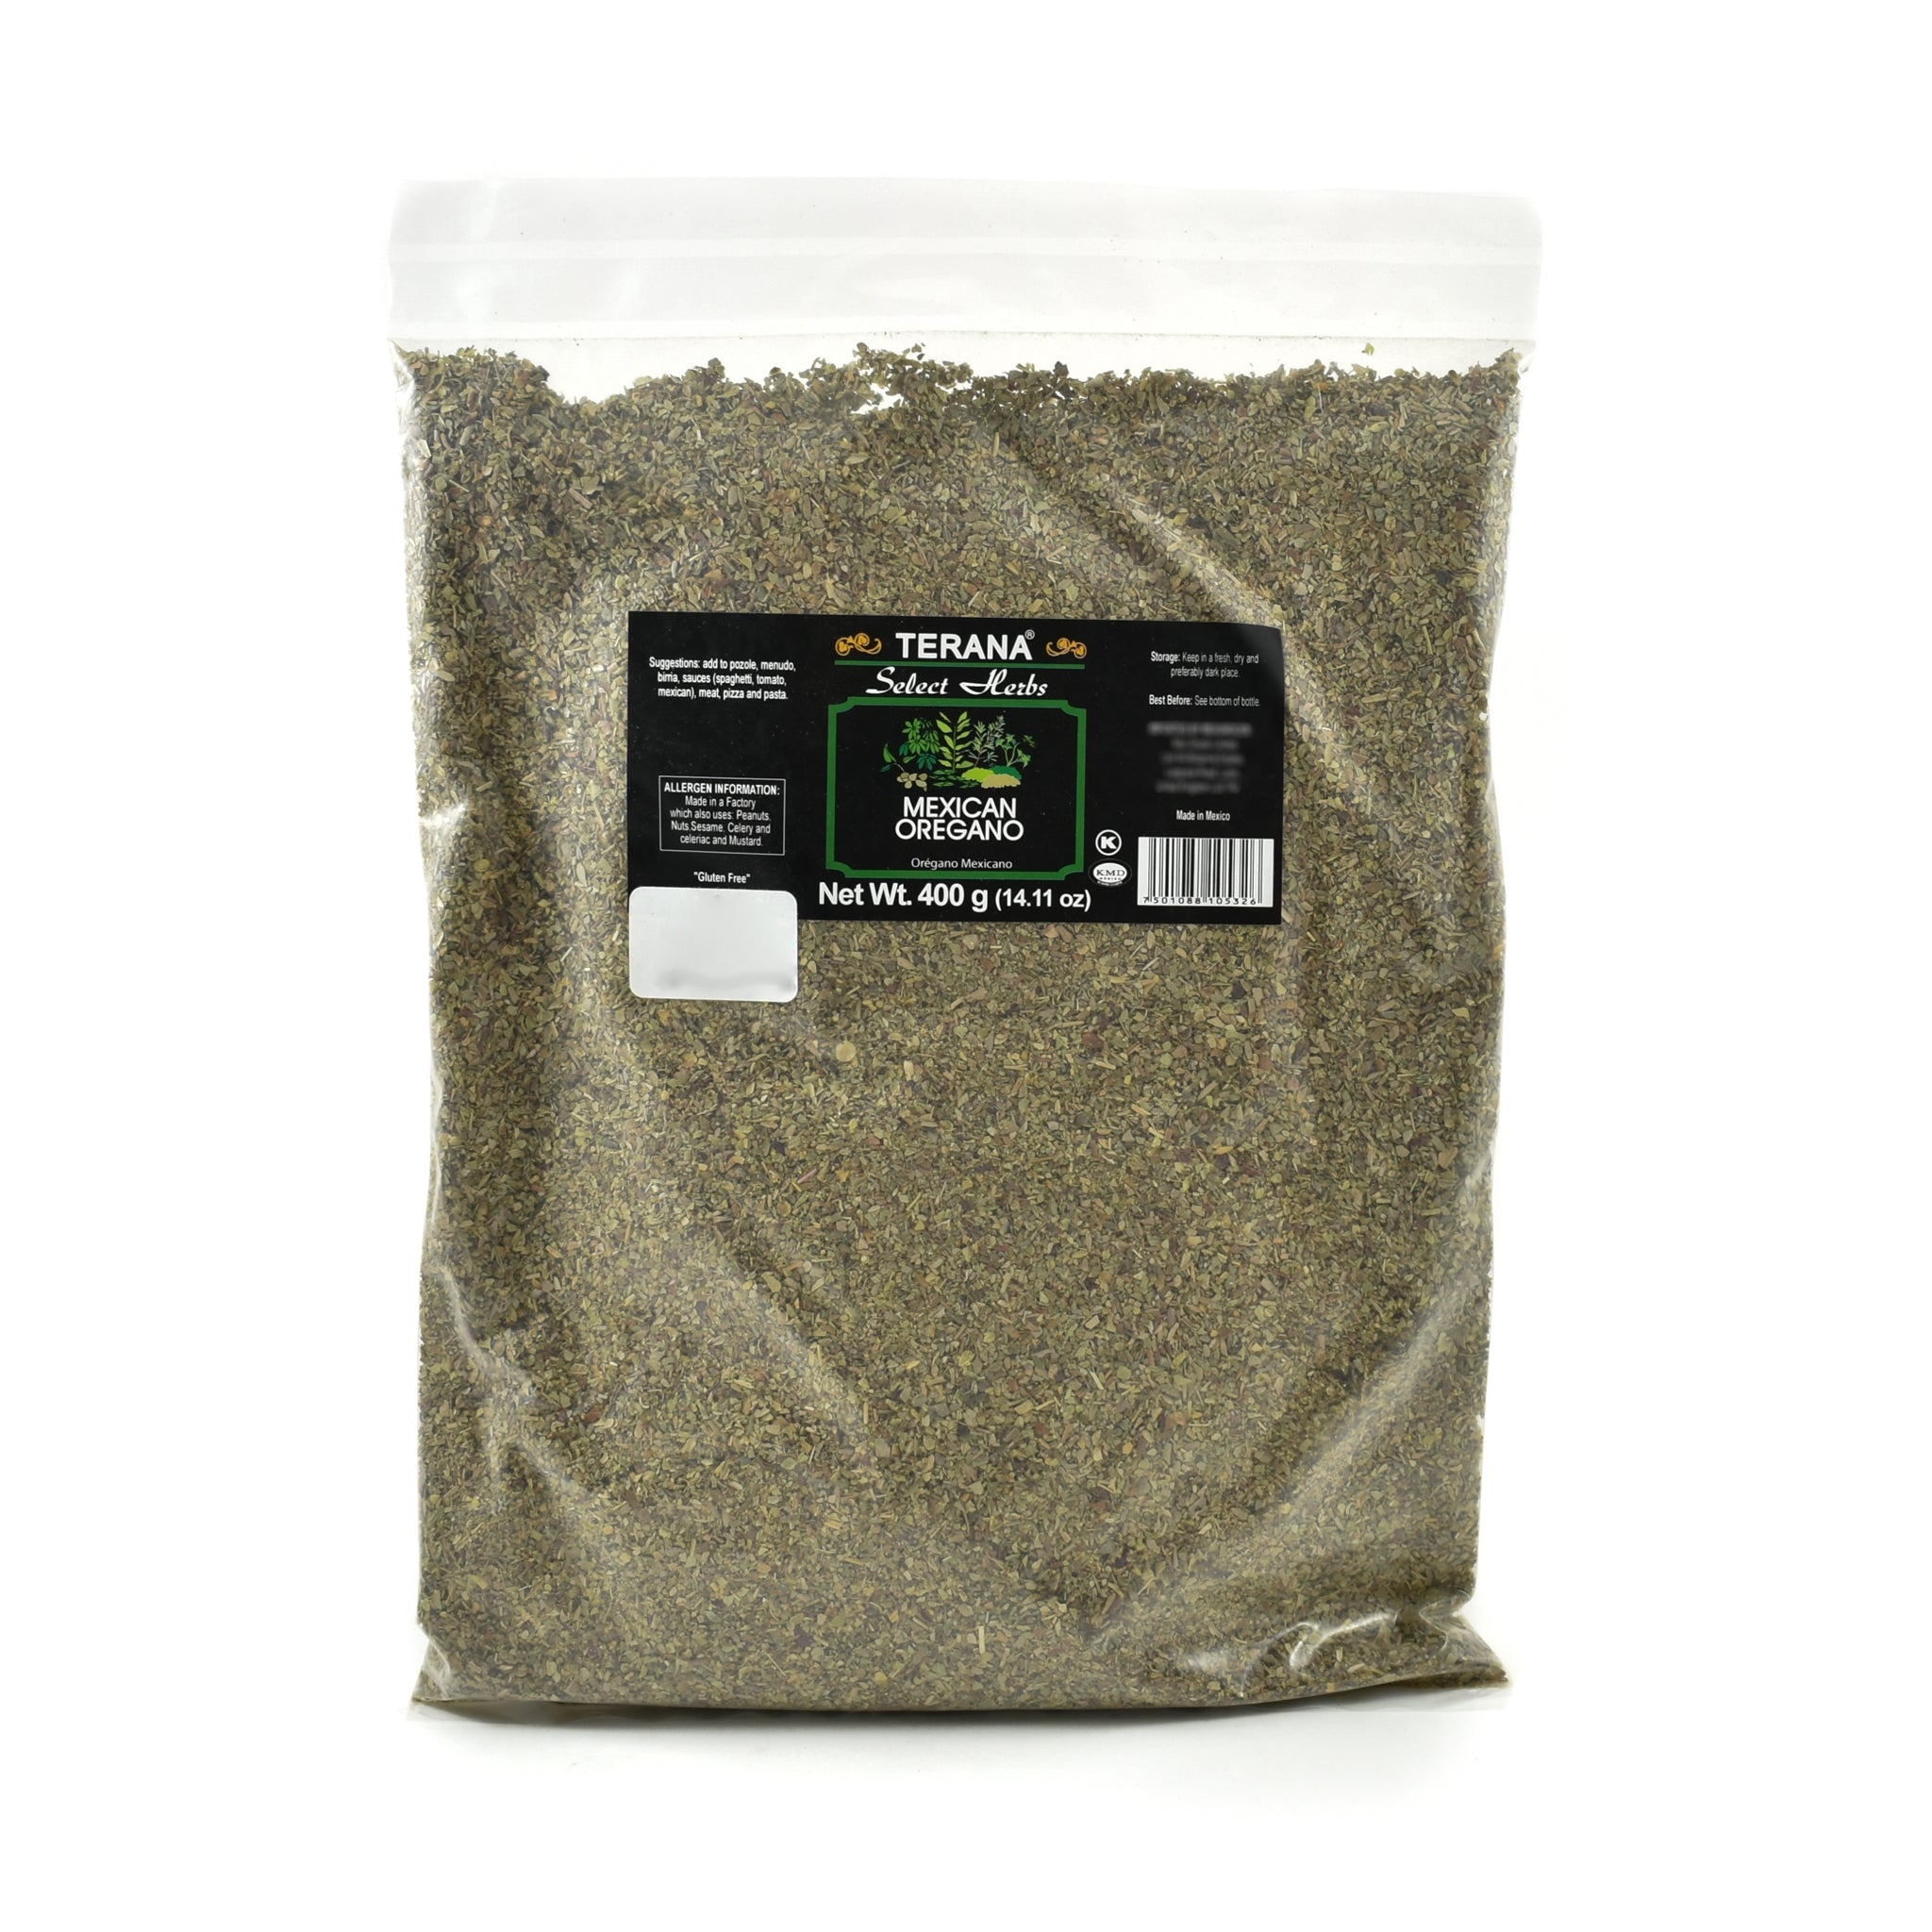 Terana Mexican Oregano 400g Ingredients Seasonings Mexican Food